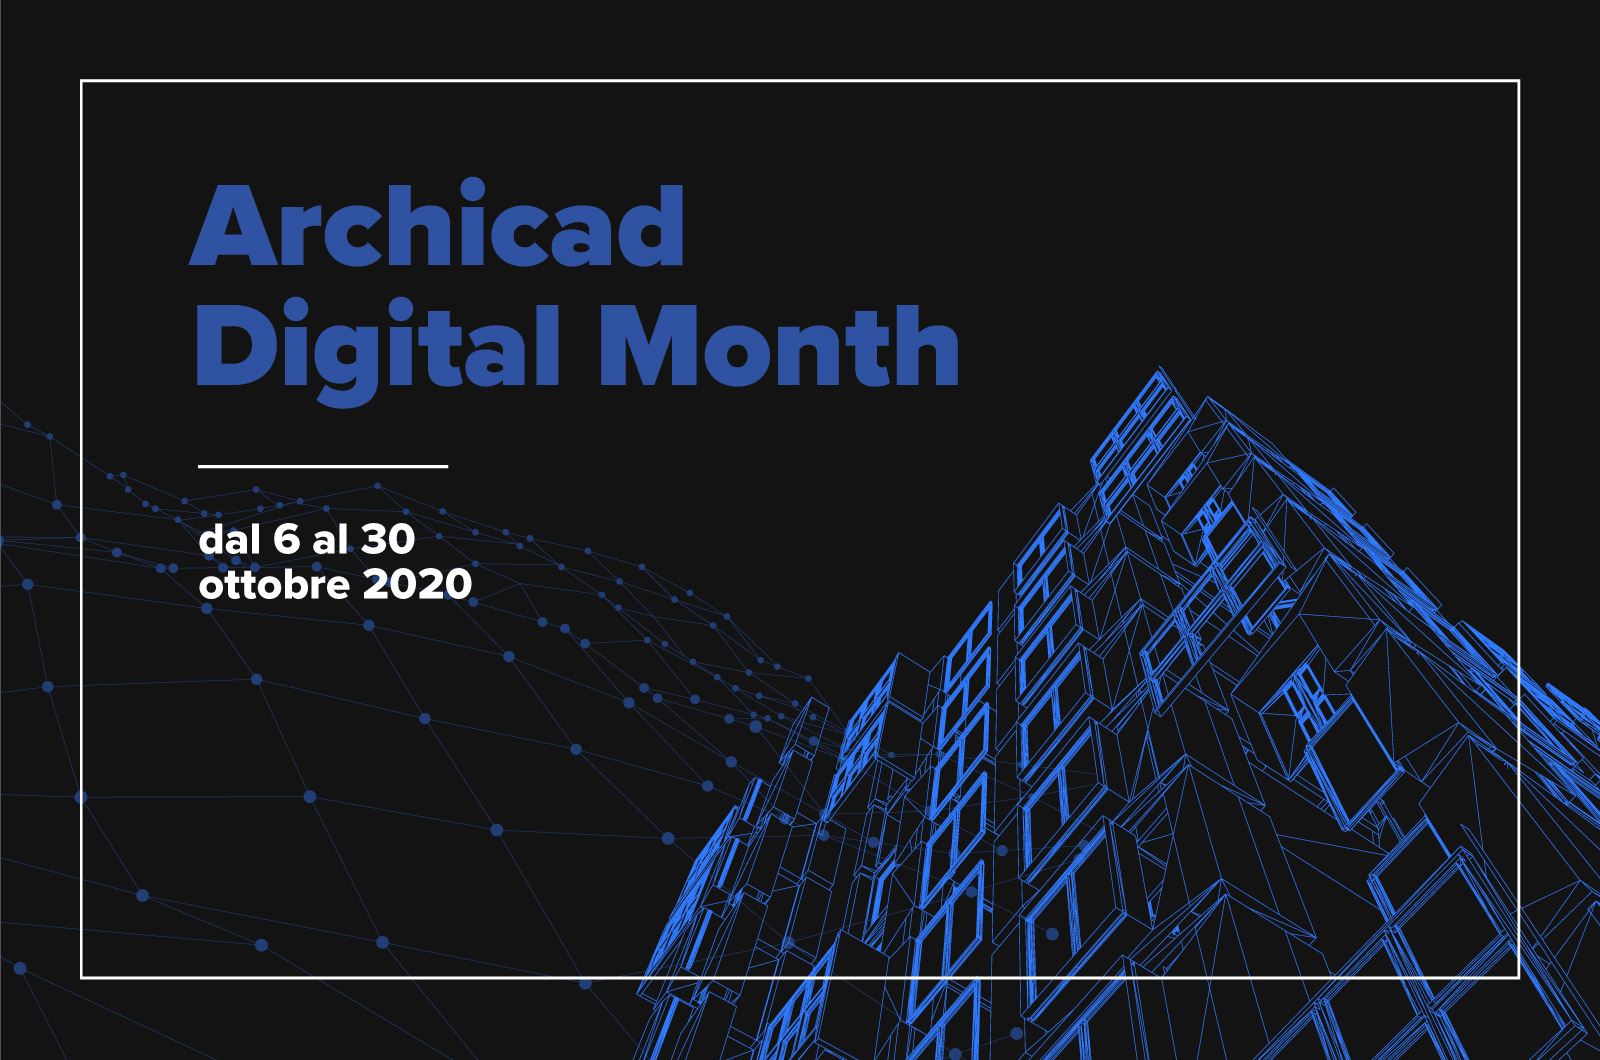 evento archicad digital month ottobre 2020